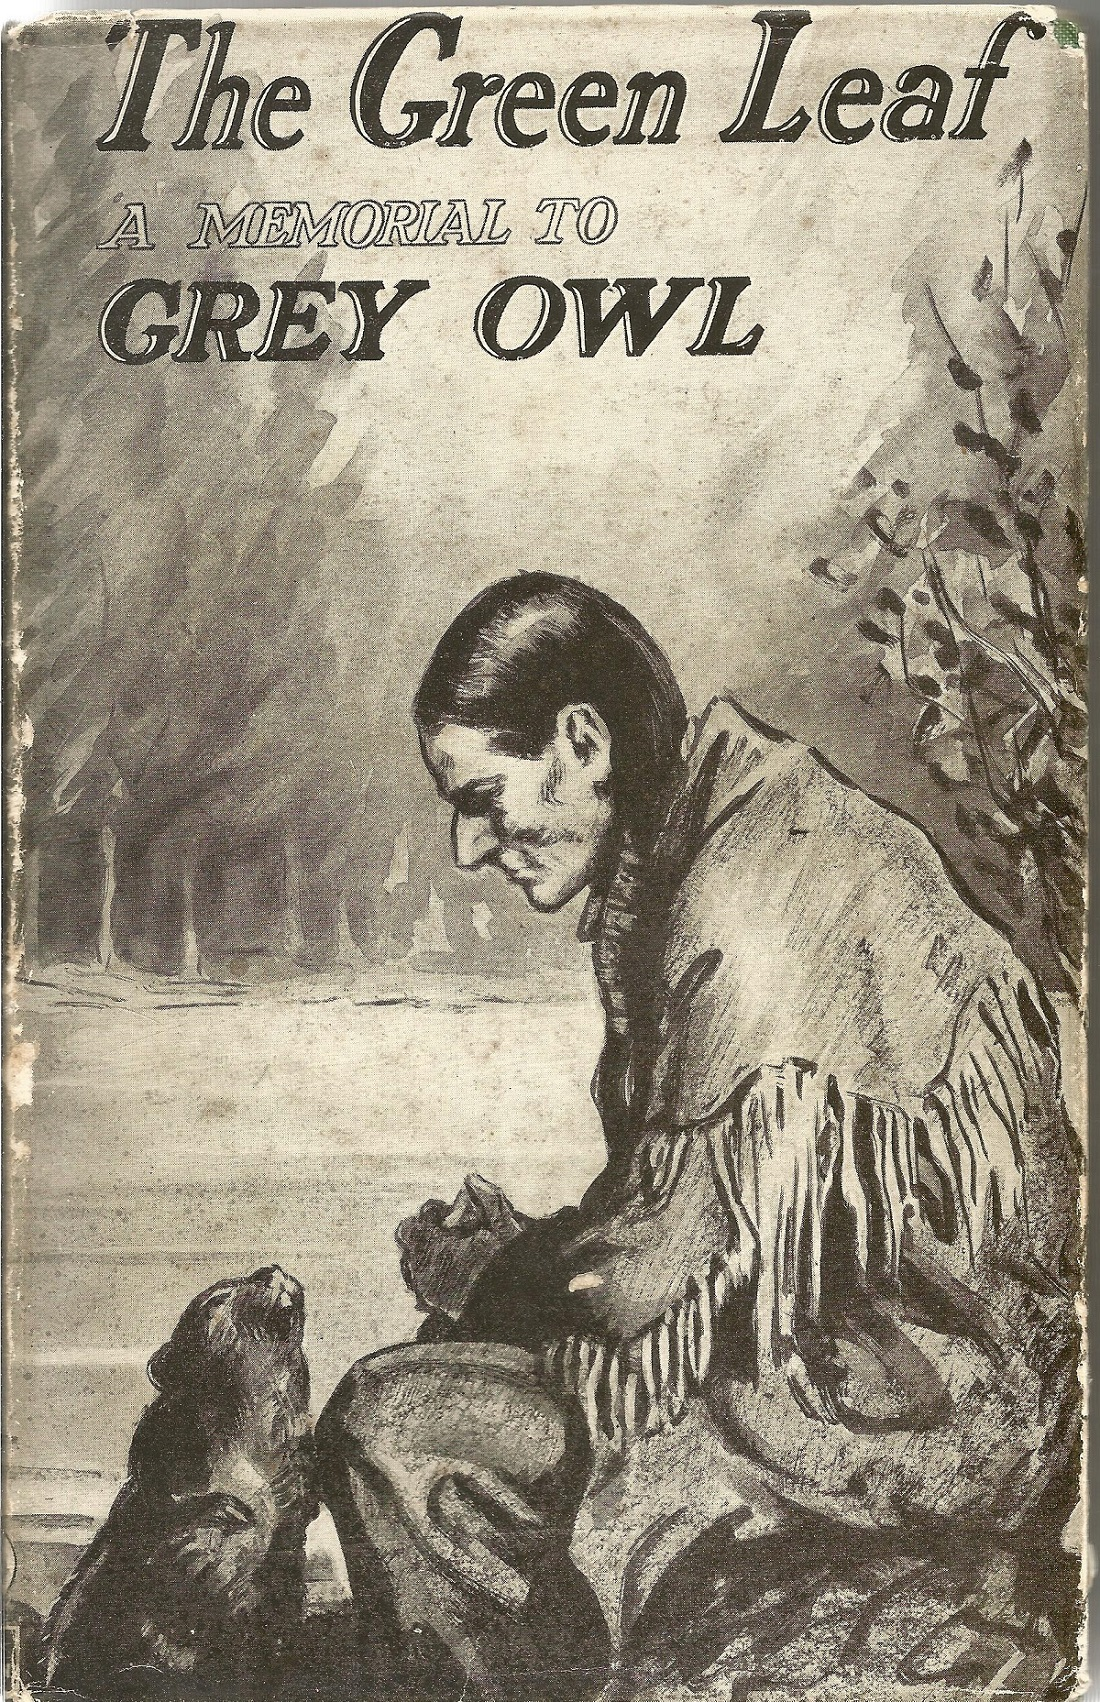 Signed & Framed 8 x10 Picture of Grey Owl, plus Hardback Book The Green Leaf A Tribute to Grey Owl - Image 2 of 4